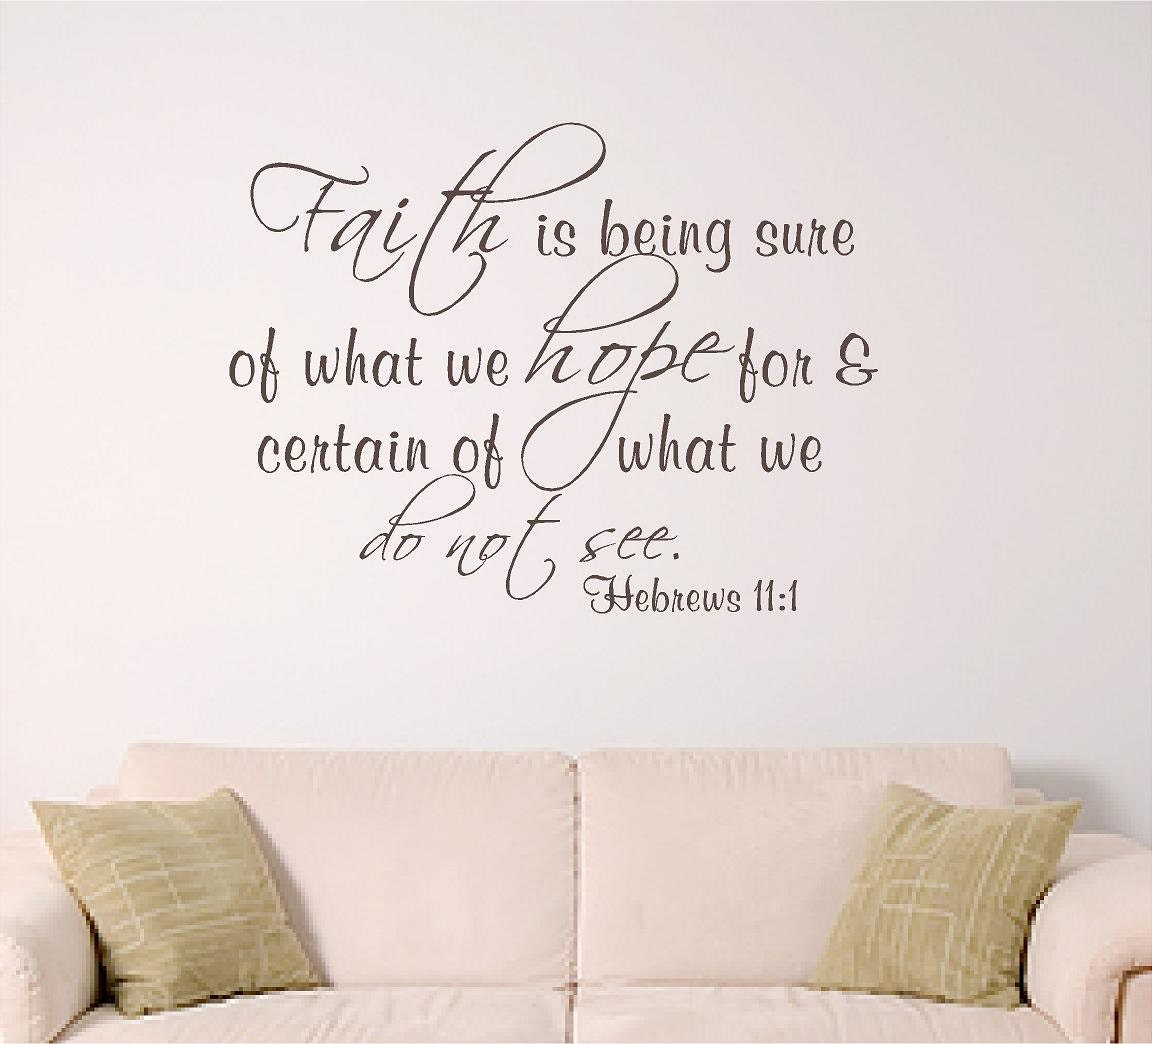 Best Quotes From Bible About Faith: Faith Bilble Verse Wall Decal Hebrews 11:1 Faith Is Being